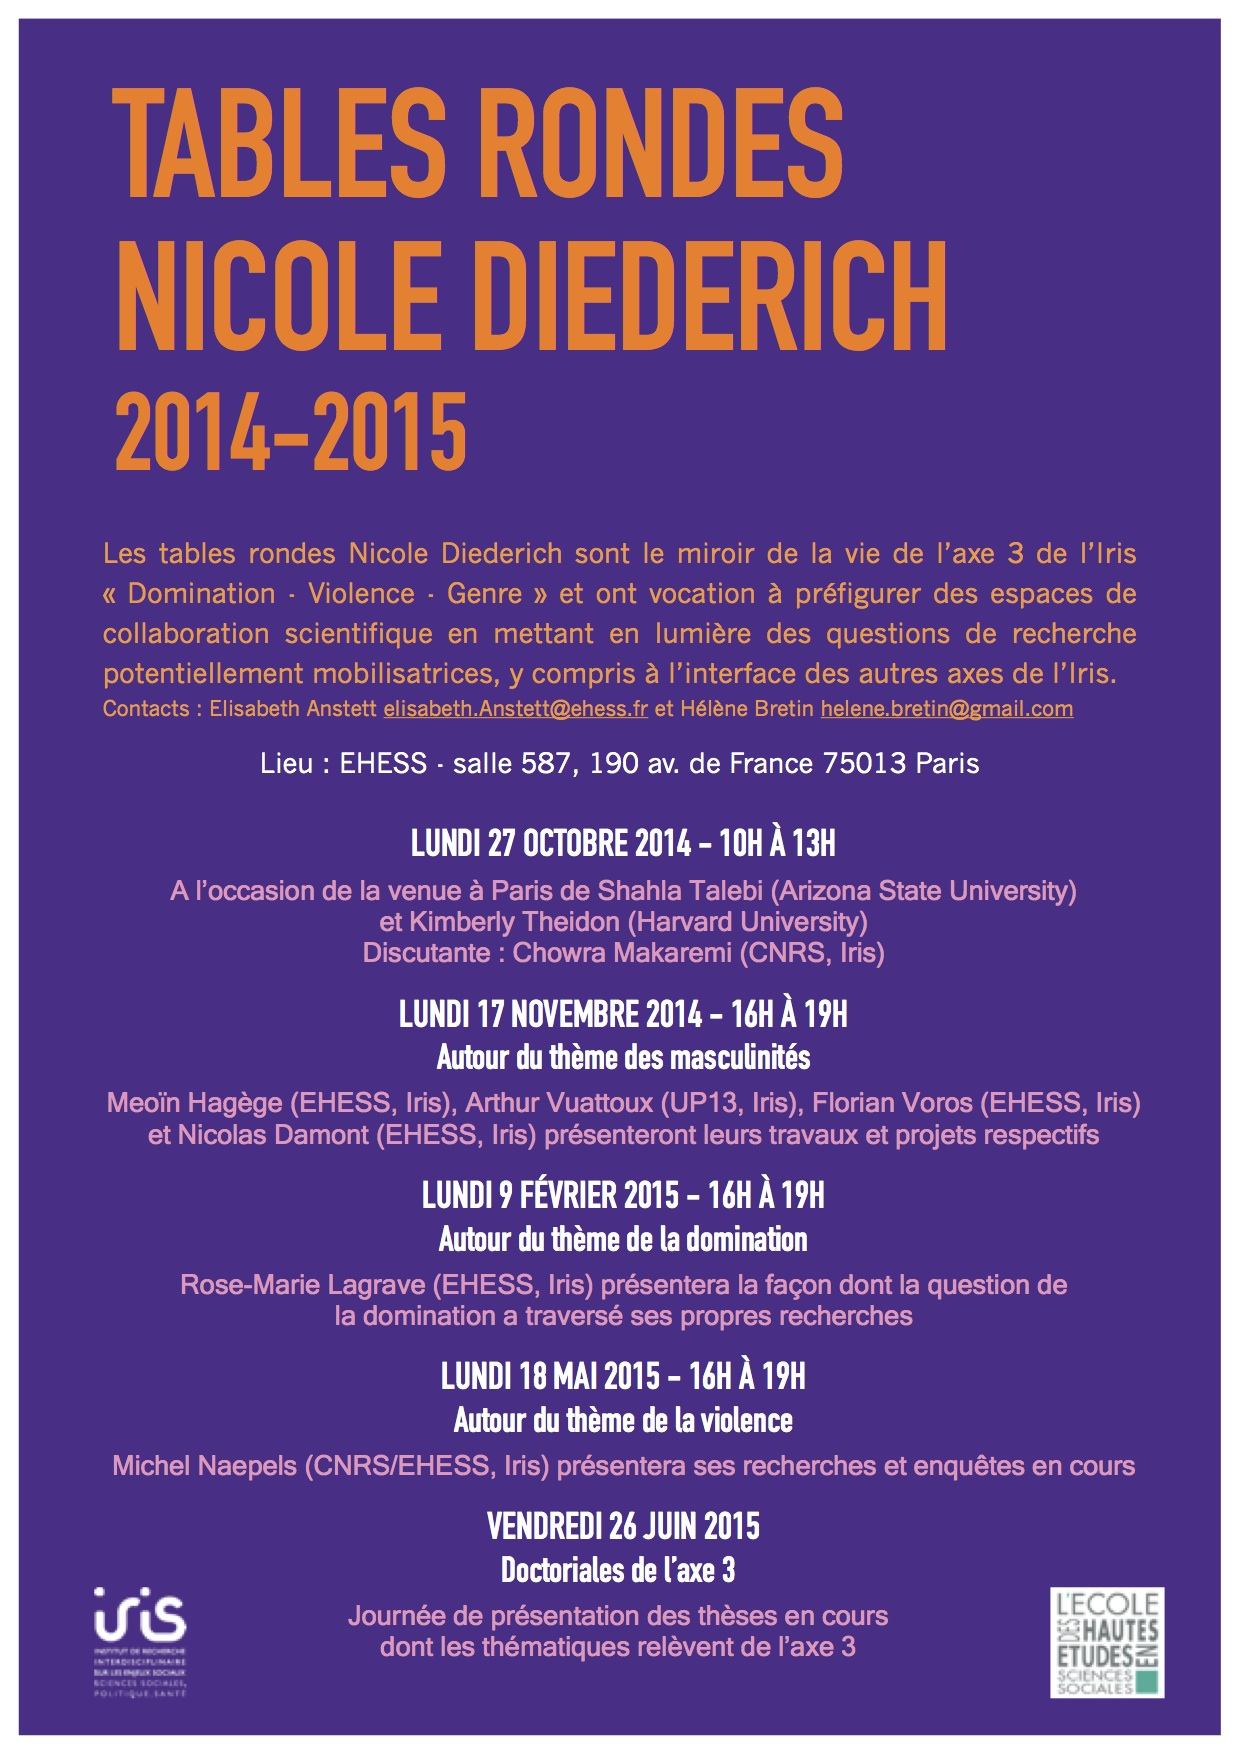 Axe 3 > Tables rondes Nicole Diederich - Programme 2014-2015